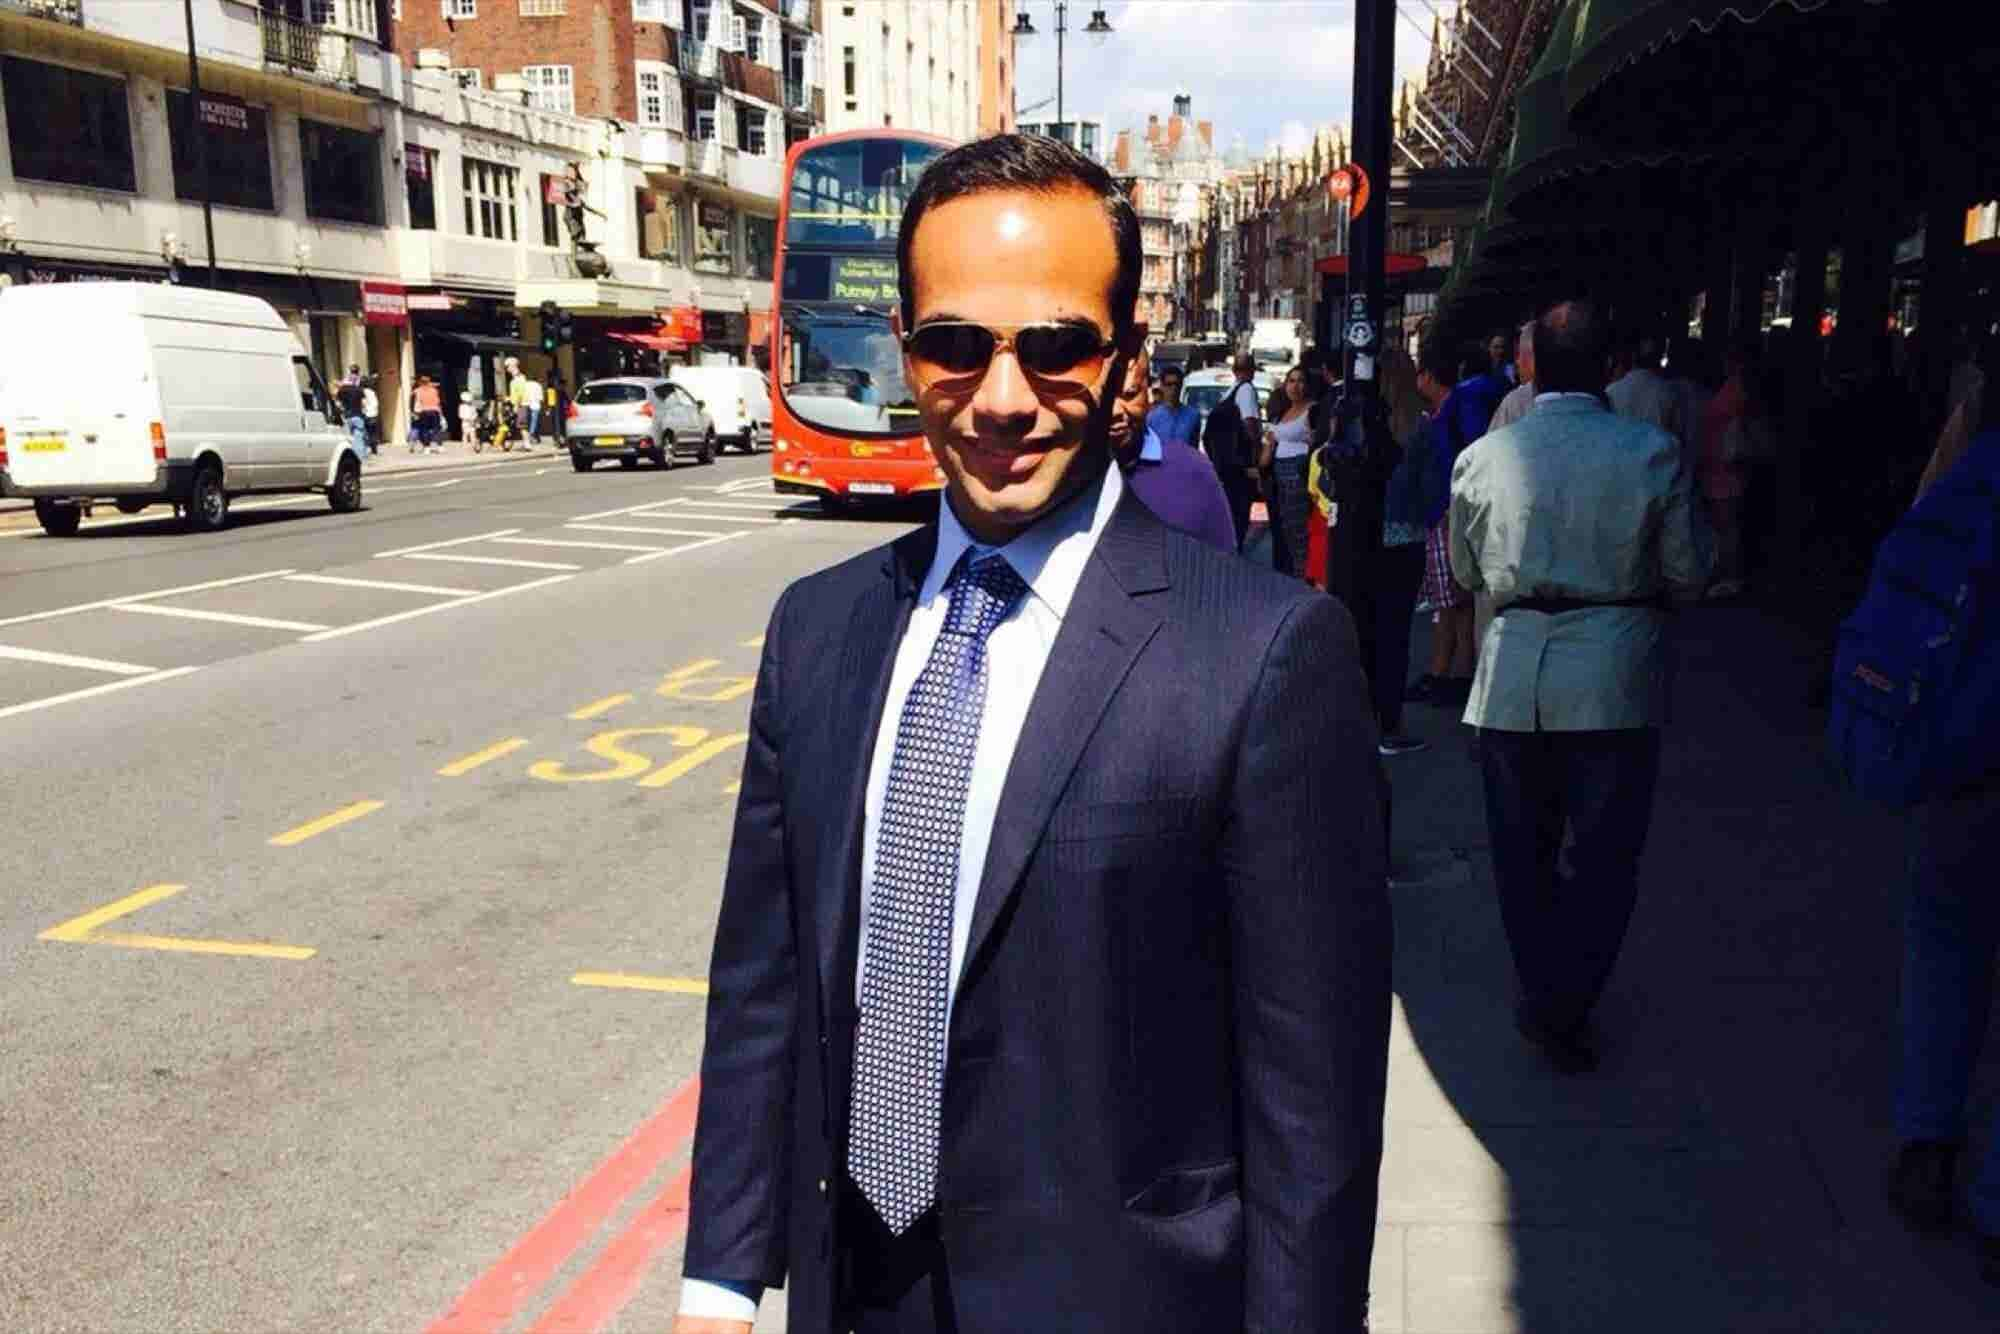 People Are Bombarding the Wrong George Papadopoulos With Notifications